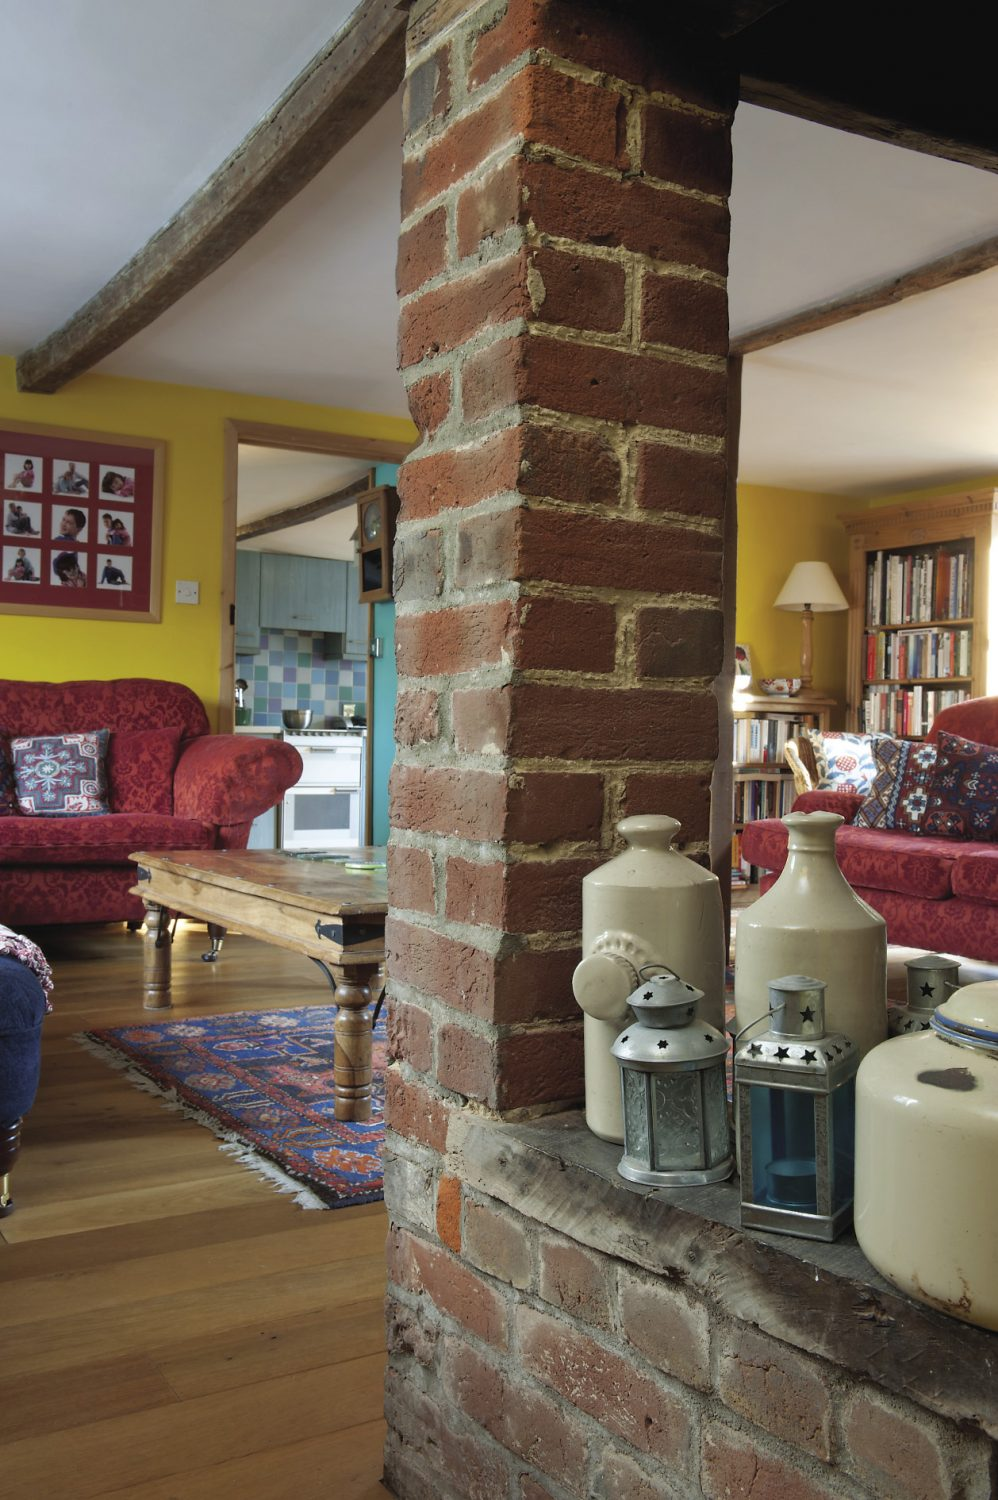 The focal pnt of the sitting room is a huge brick inglenook fireplace with a woodburning stove